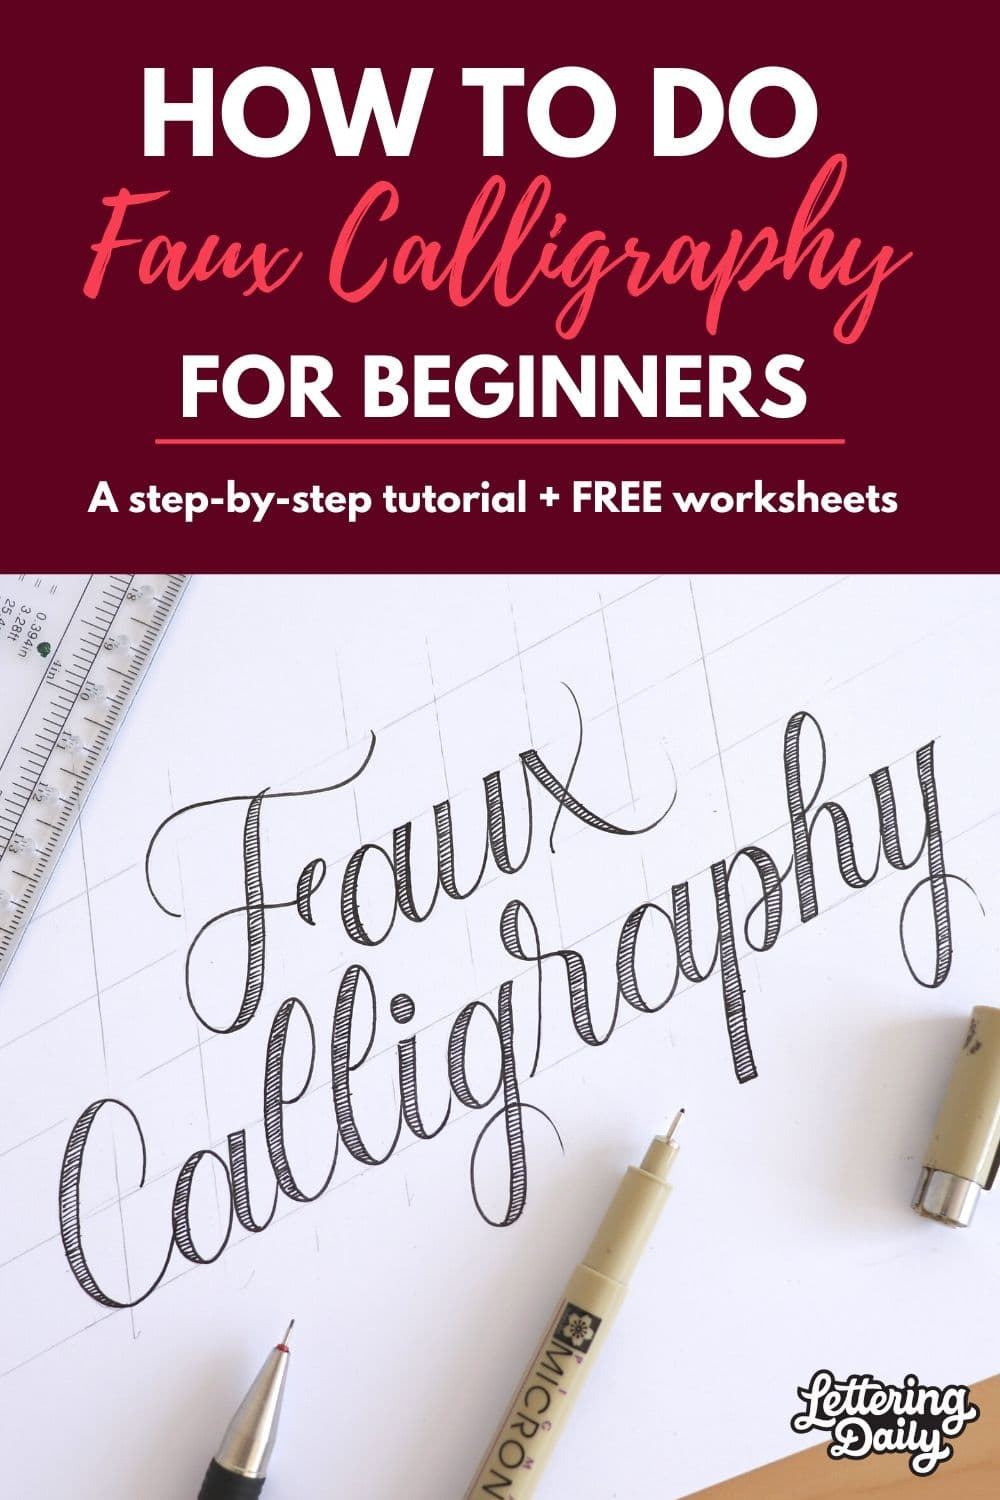 How to do faux calligraphy (UPDATED) 2020 - Lettering Daily